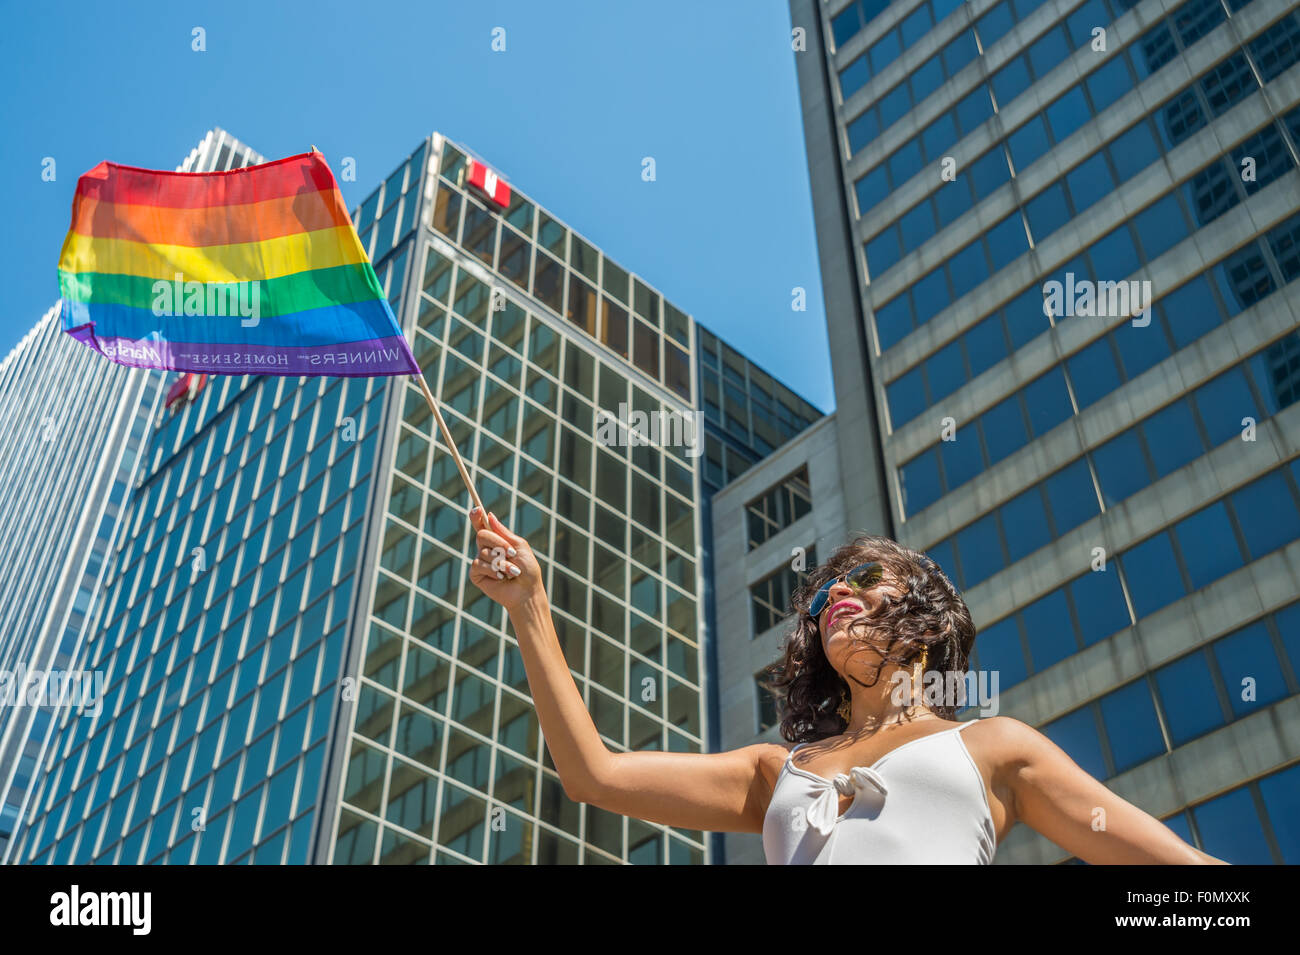 MONTREAL, CANADA, 16th August 2015. A female spectator is waving the gay rainbow flag at the 2015 Gay Pride Parade - Stock Image